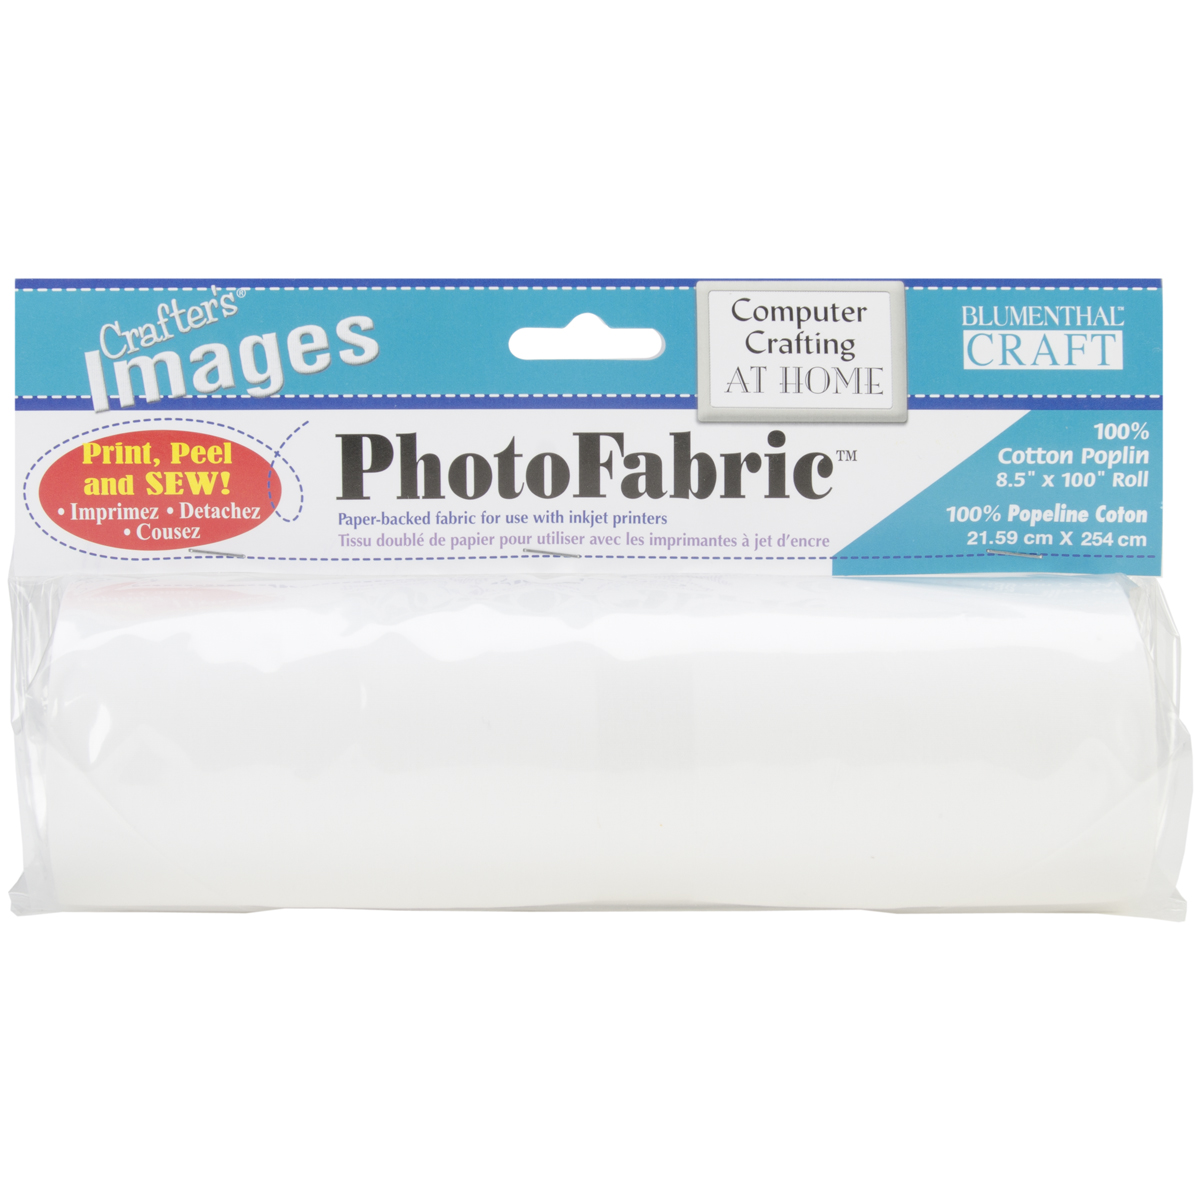 "Crafter's Images PhotoFabric 8.5""X100""-100% Cotton Poplin"